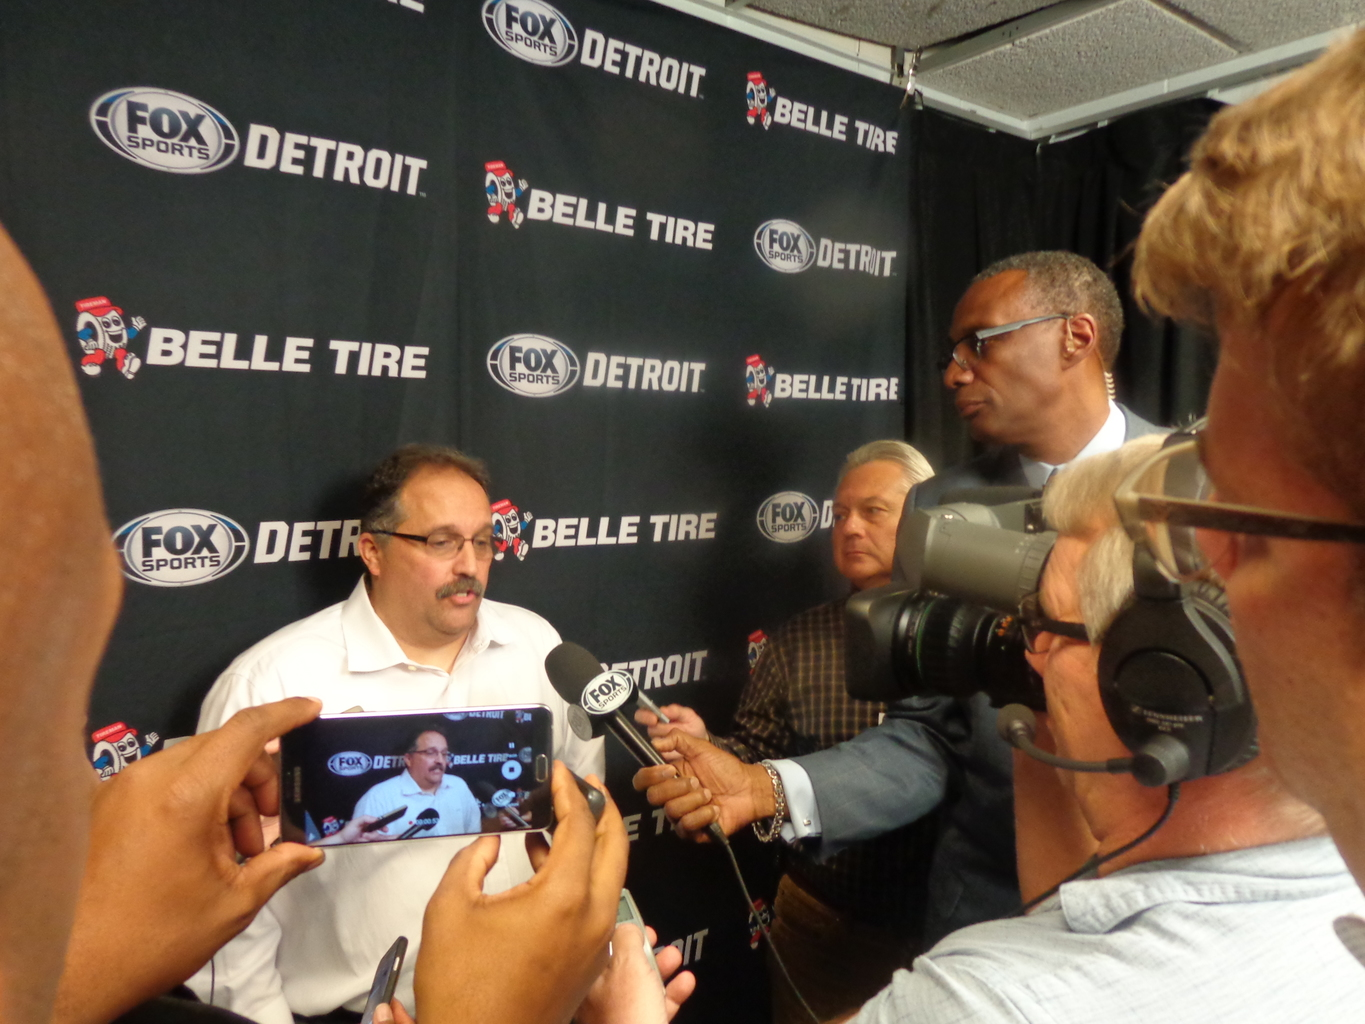 Pistons Coach Van Gundy, seated at left, is surrounded by reporters including Greg Kesler standing at right holding a Fox Sports mic.